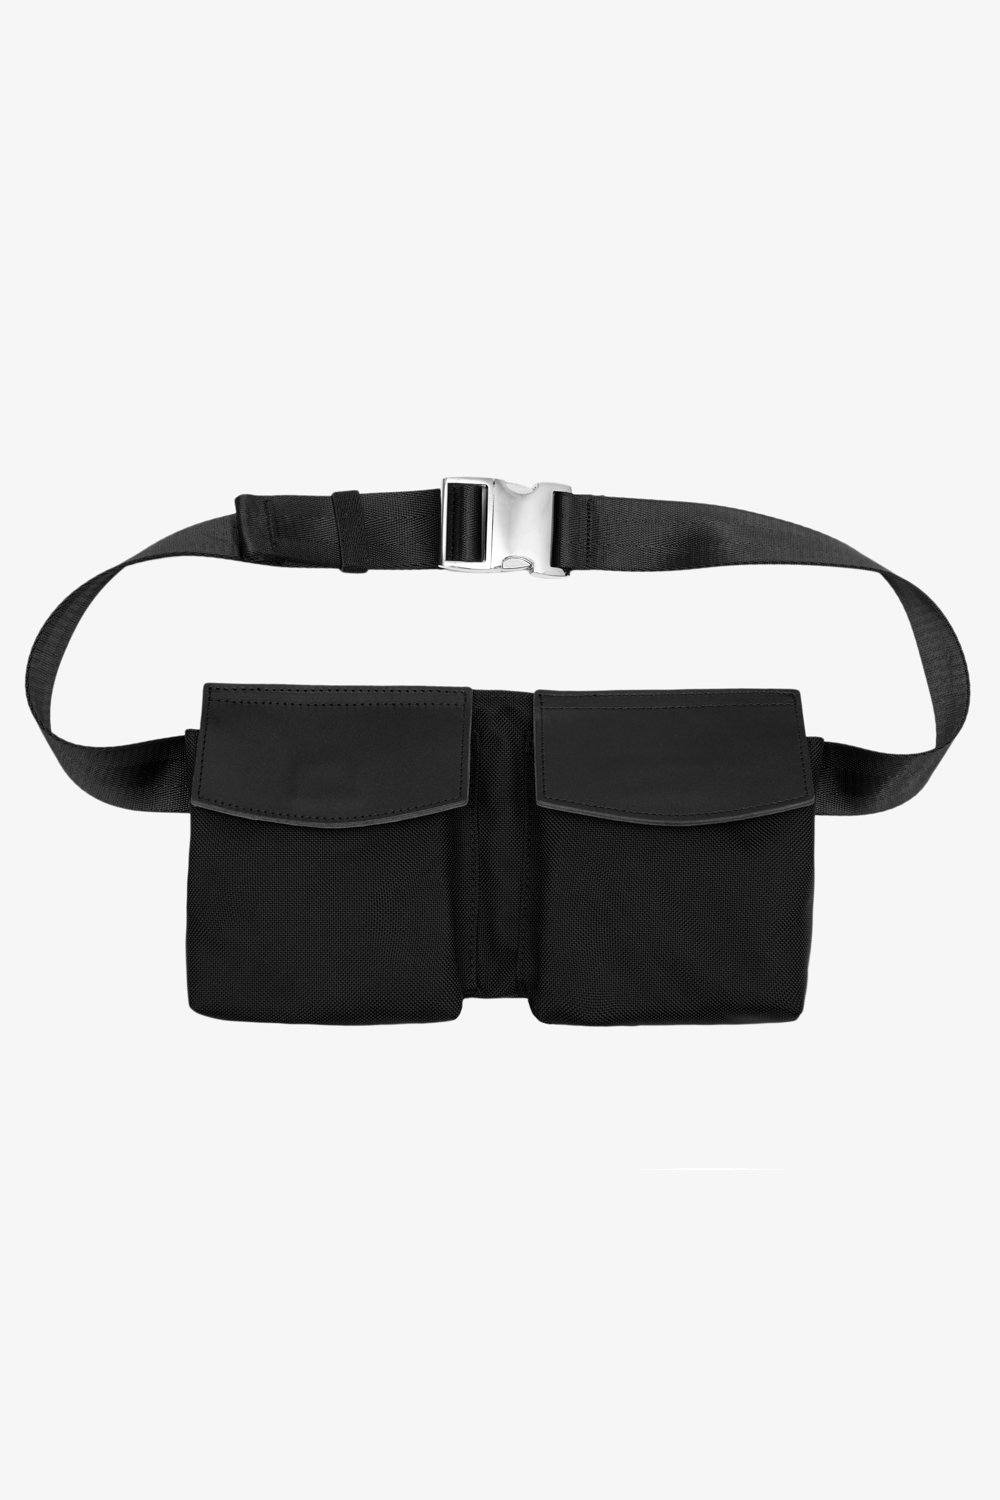 Billie Belt Bag - Black Jack + Mulligan Black